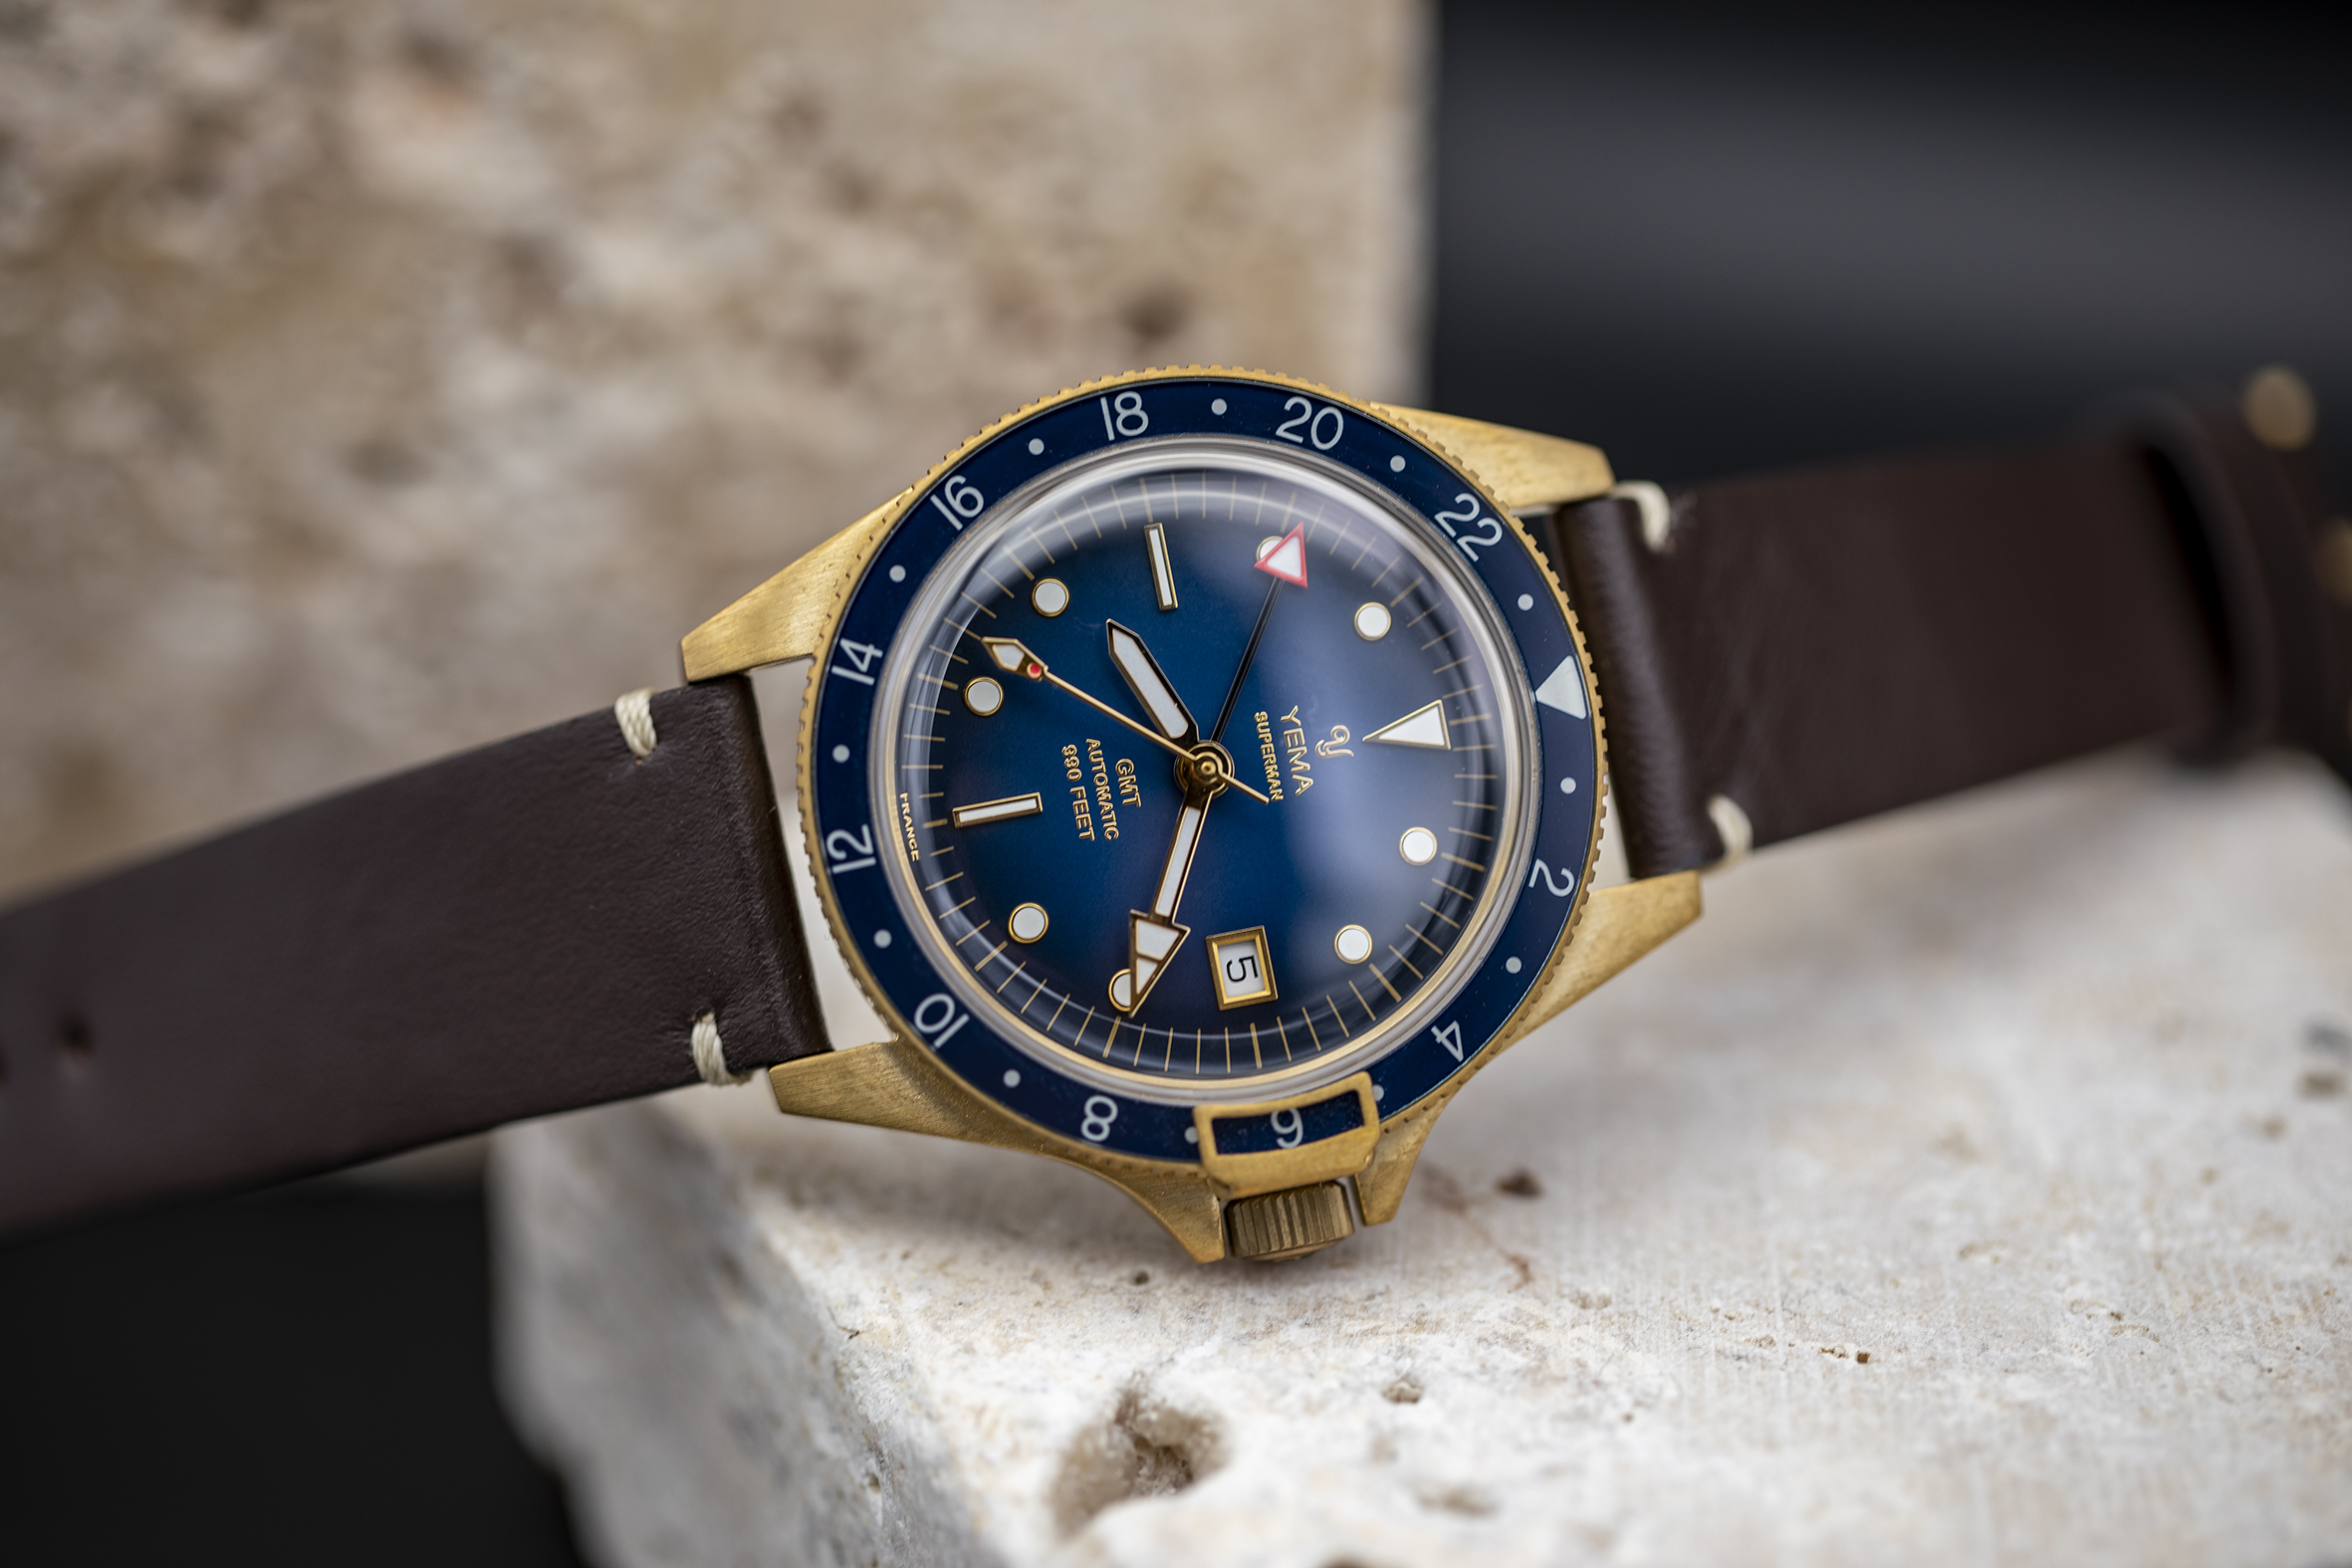 INTRODUCING: The new Yema Superman Bronze collection debuts two new in-house calibers, with fresh dials in a strong combination of steel and bronze